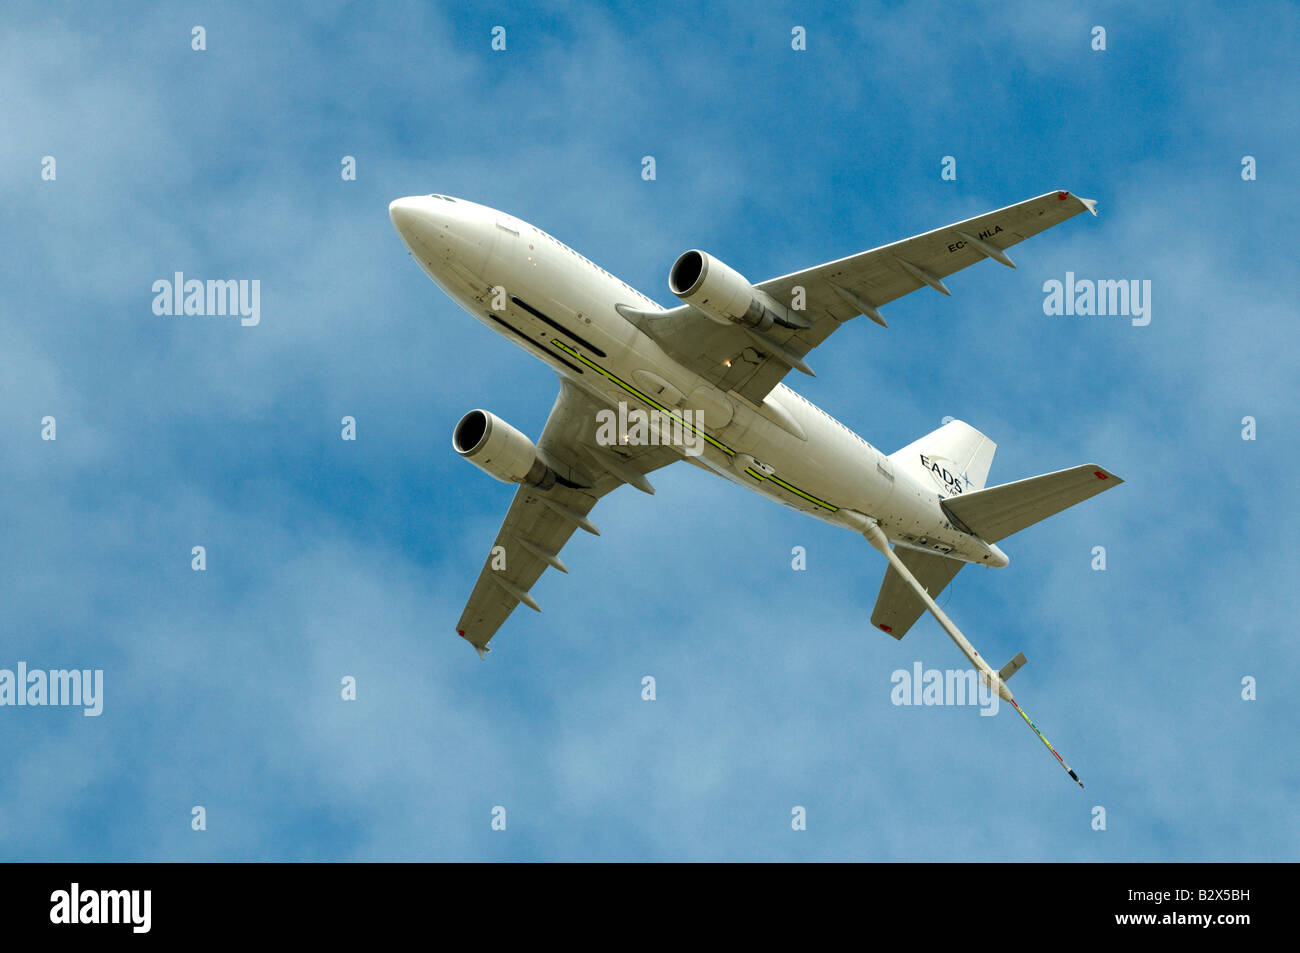 Airbus A310 EADS Air Refuelling tanker flying overhead with refuel-er extended Farnborough Air Show 2008 - Stock Image